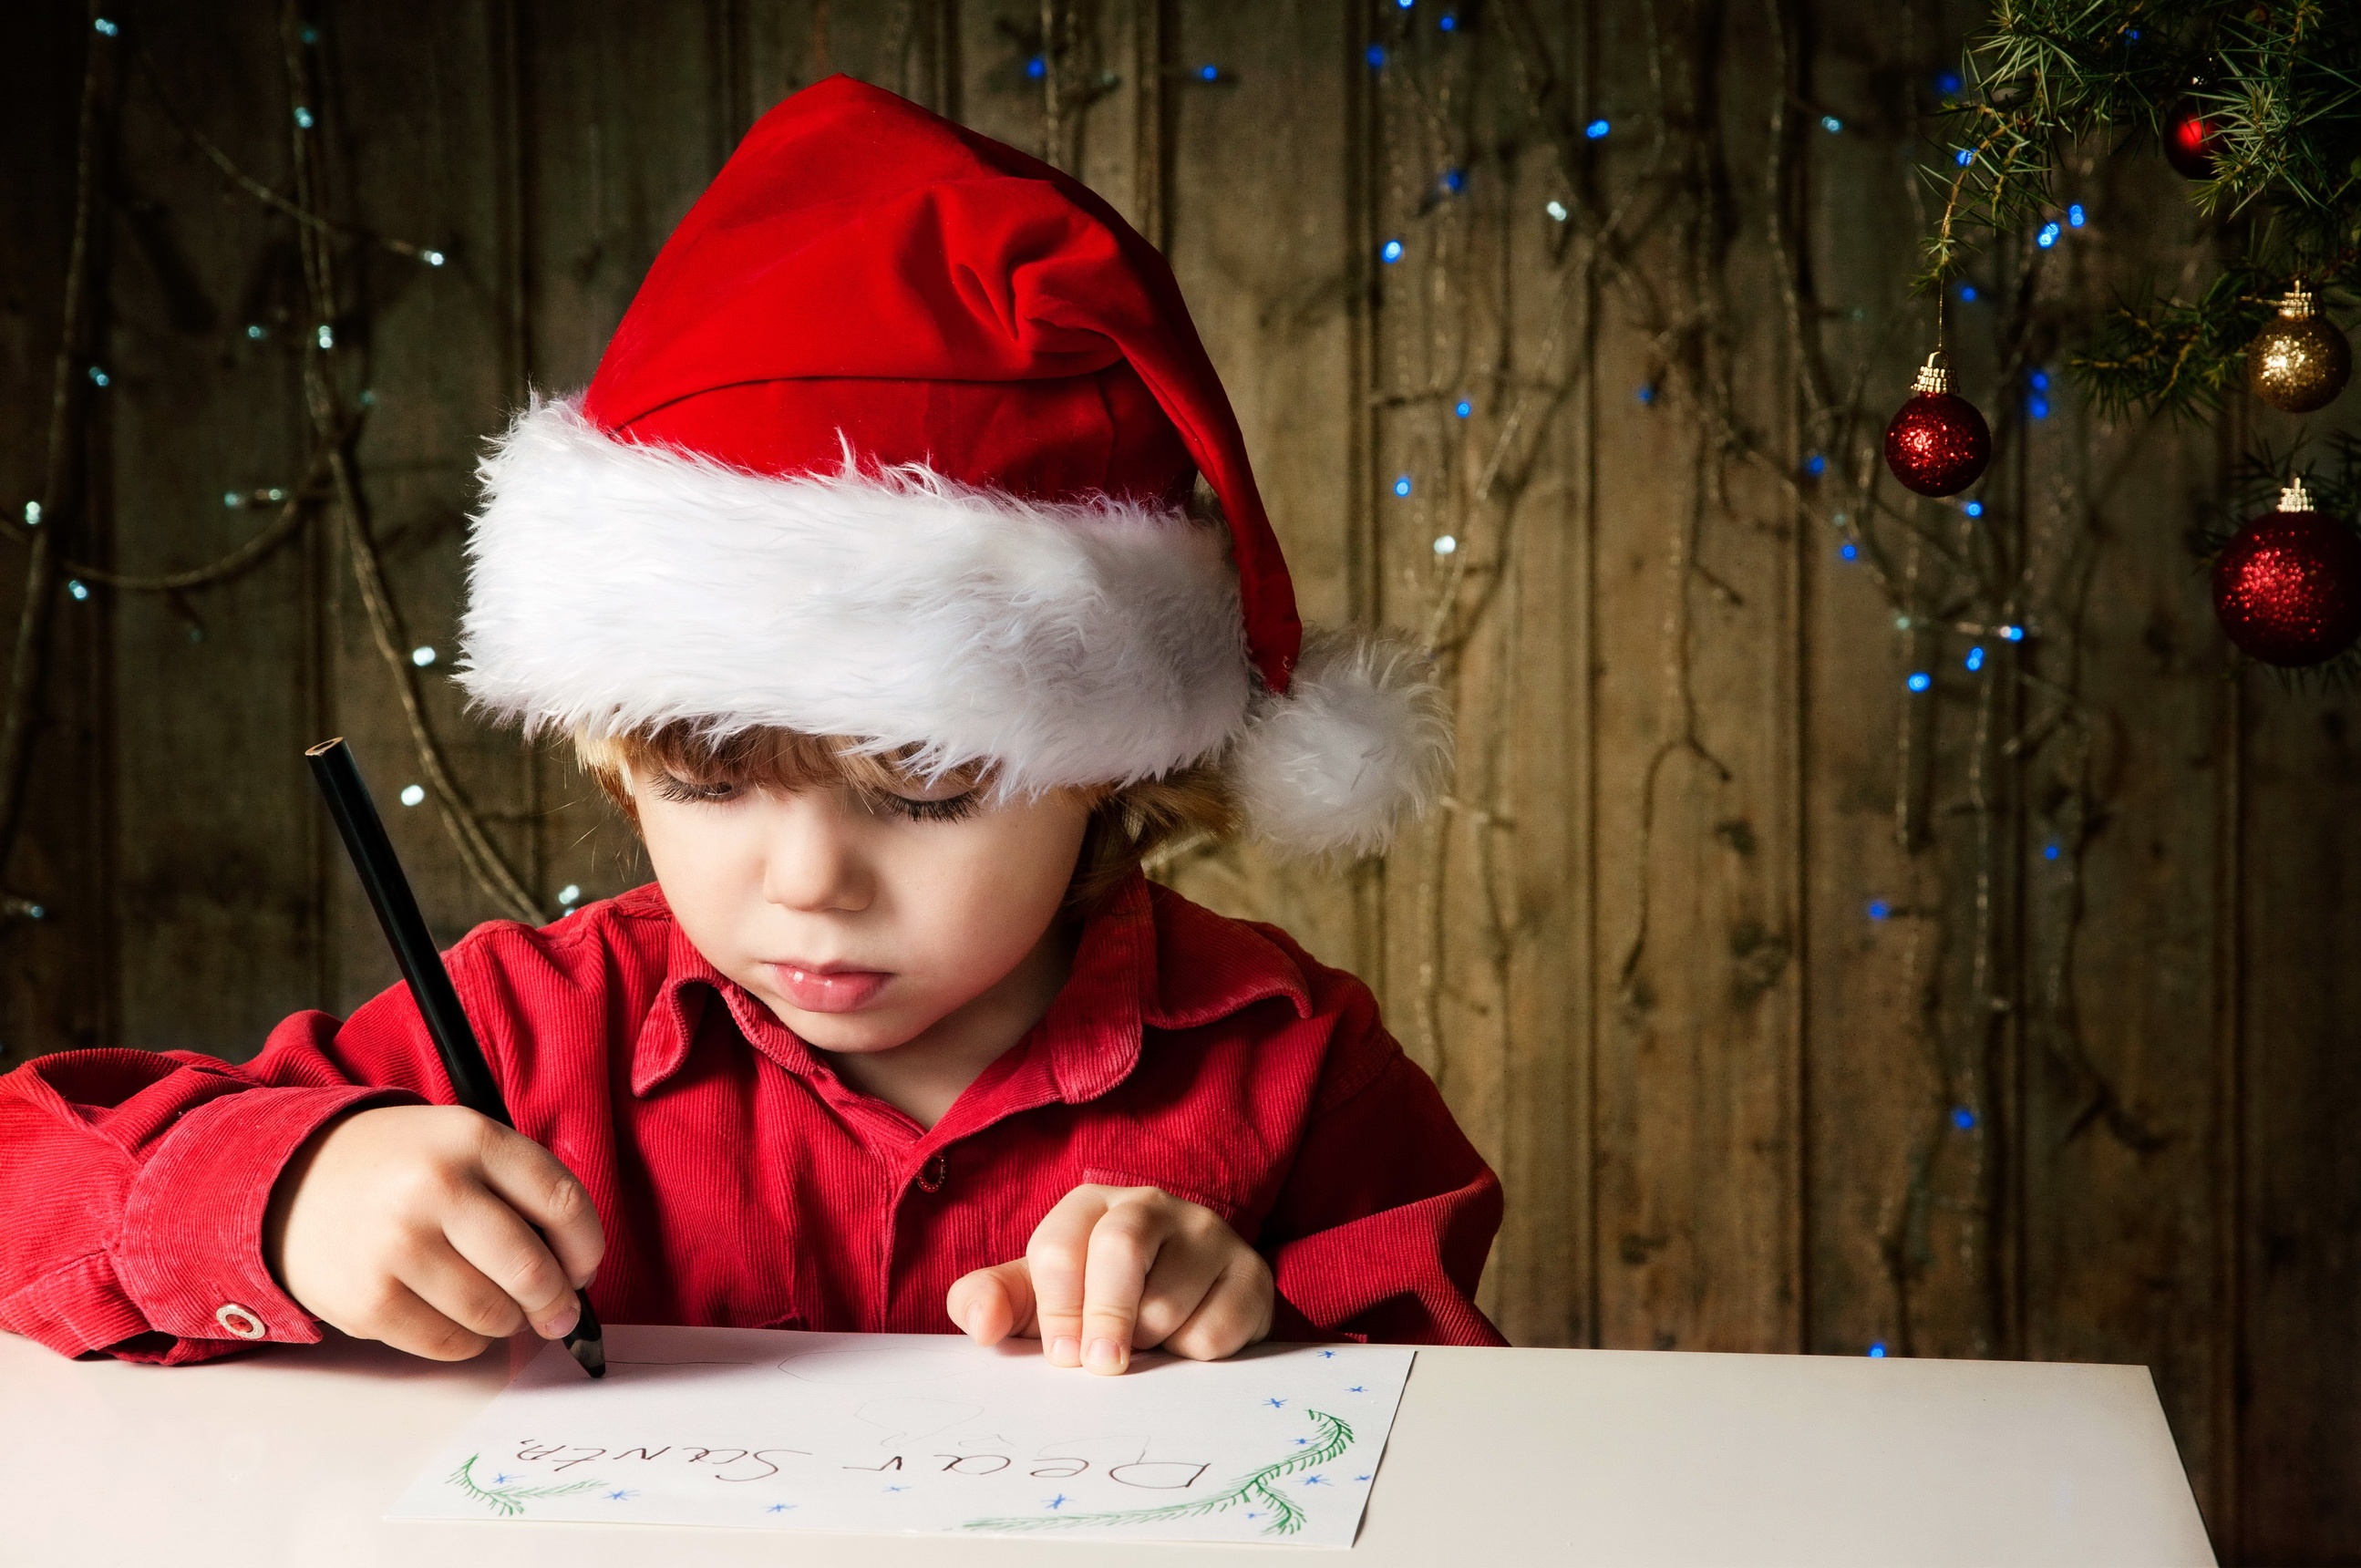 essays christmas kids These christmas creative writing ideas can help you and your students to come up with new ways to express yourself creatively while sugar plums dance in your head.